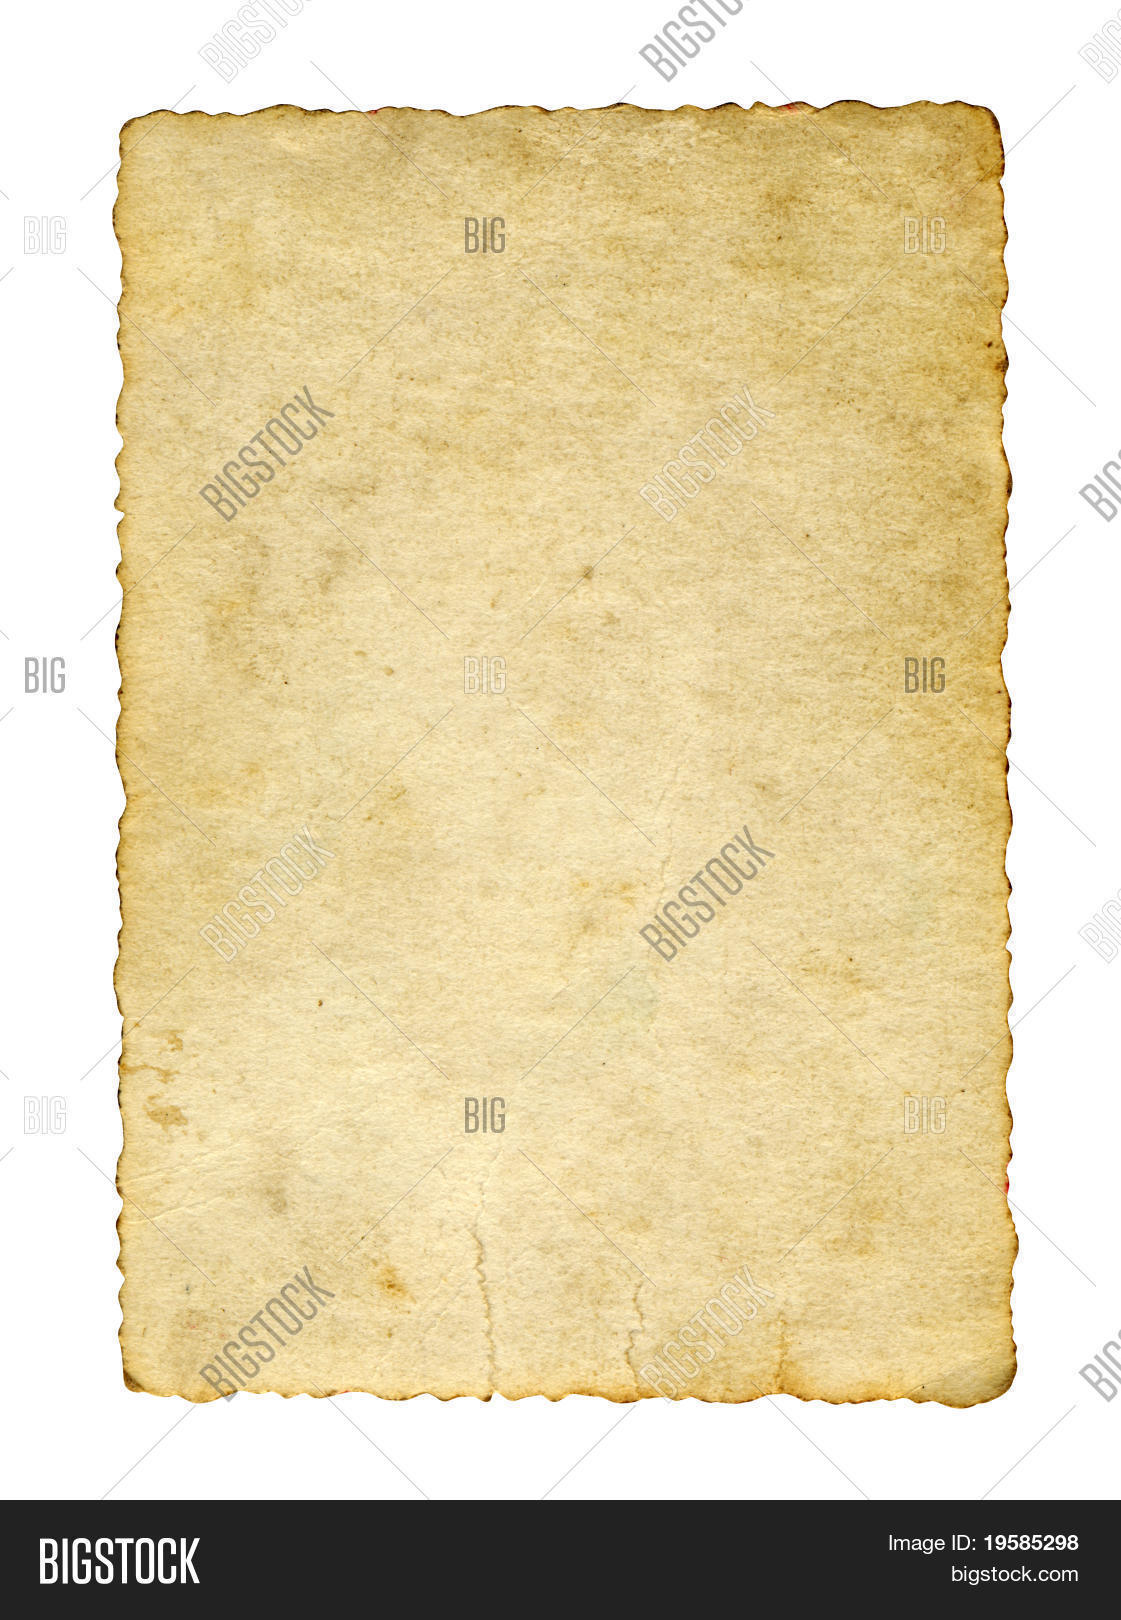 HIGH RESOLUTION Old Image & Photo (Free Trial) | Bigstock